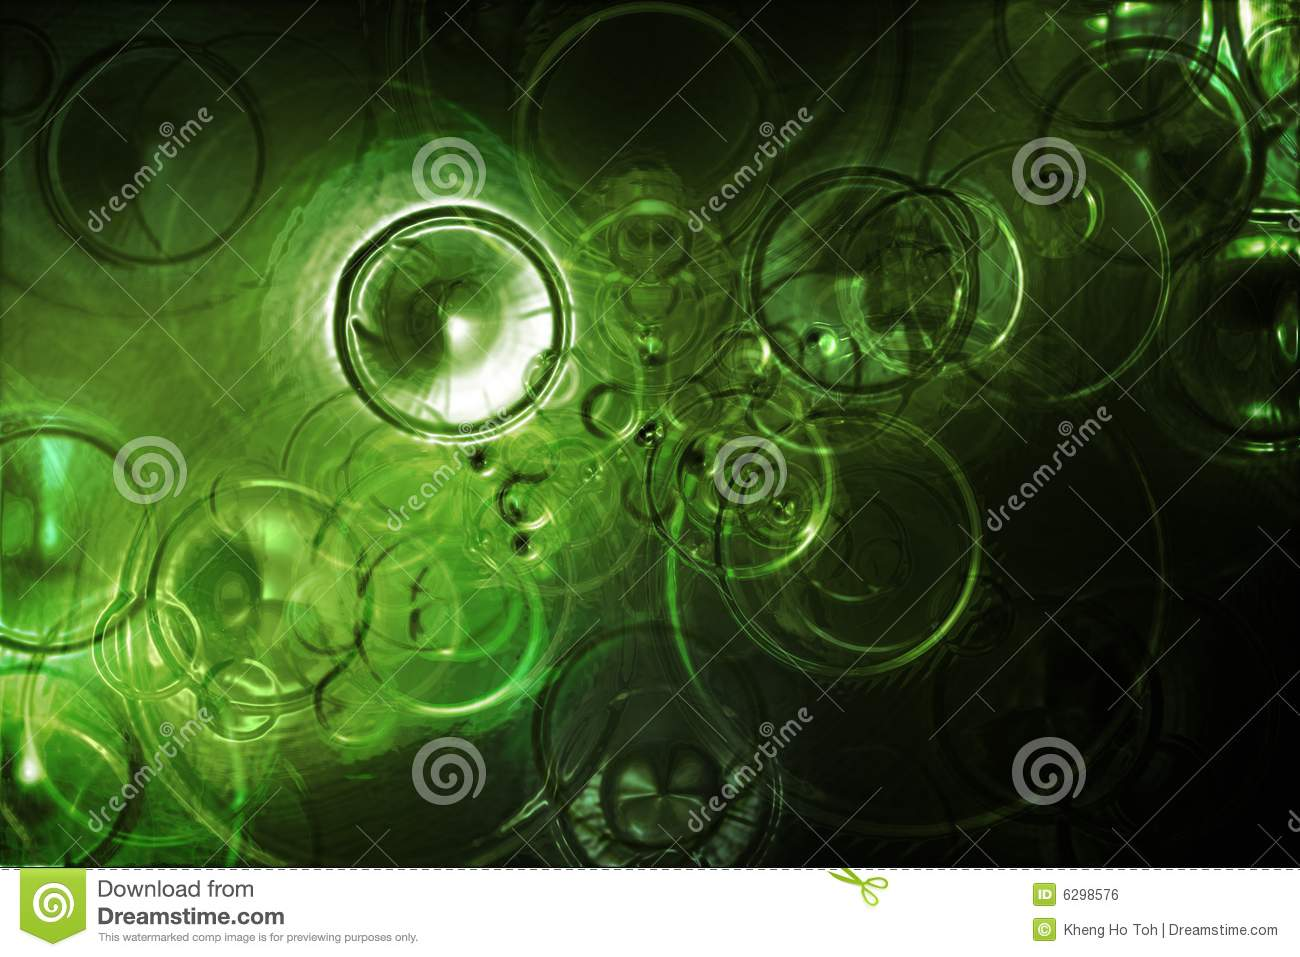 Futuristic Raindrops Abstract In a Green Water